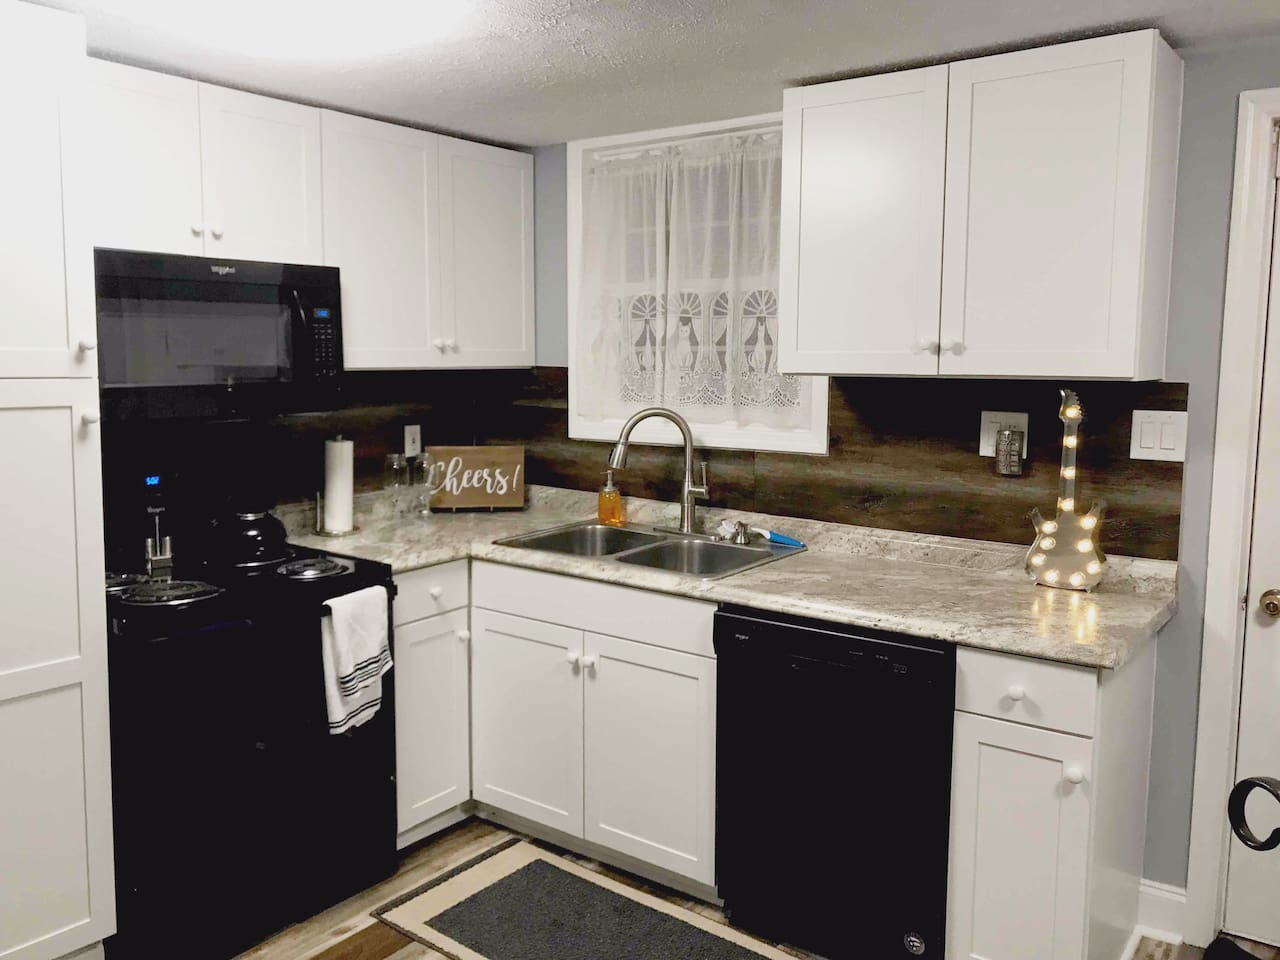 Remodeled Kitchen with New Cabinets, Dishwasher, counters, sink and more.